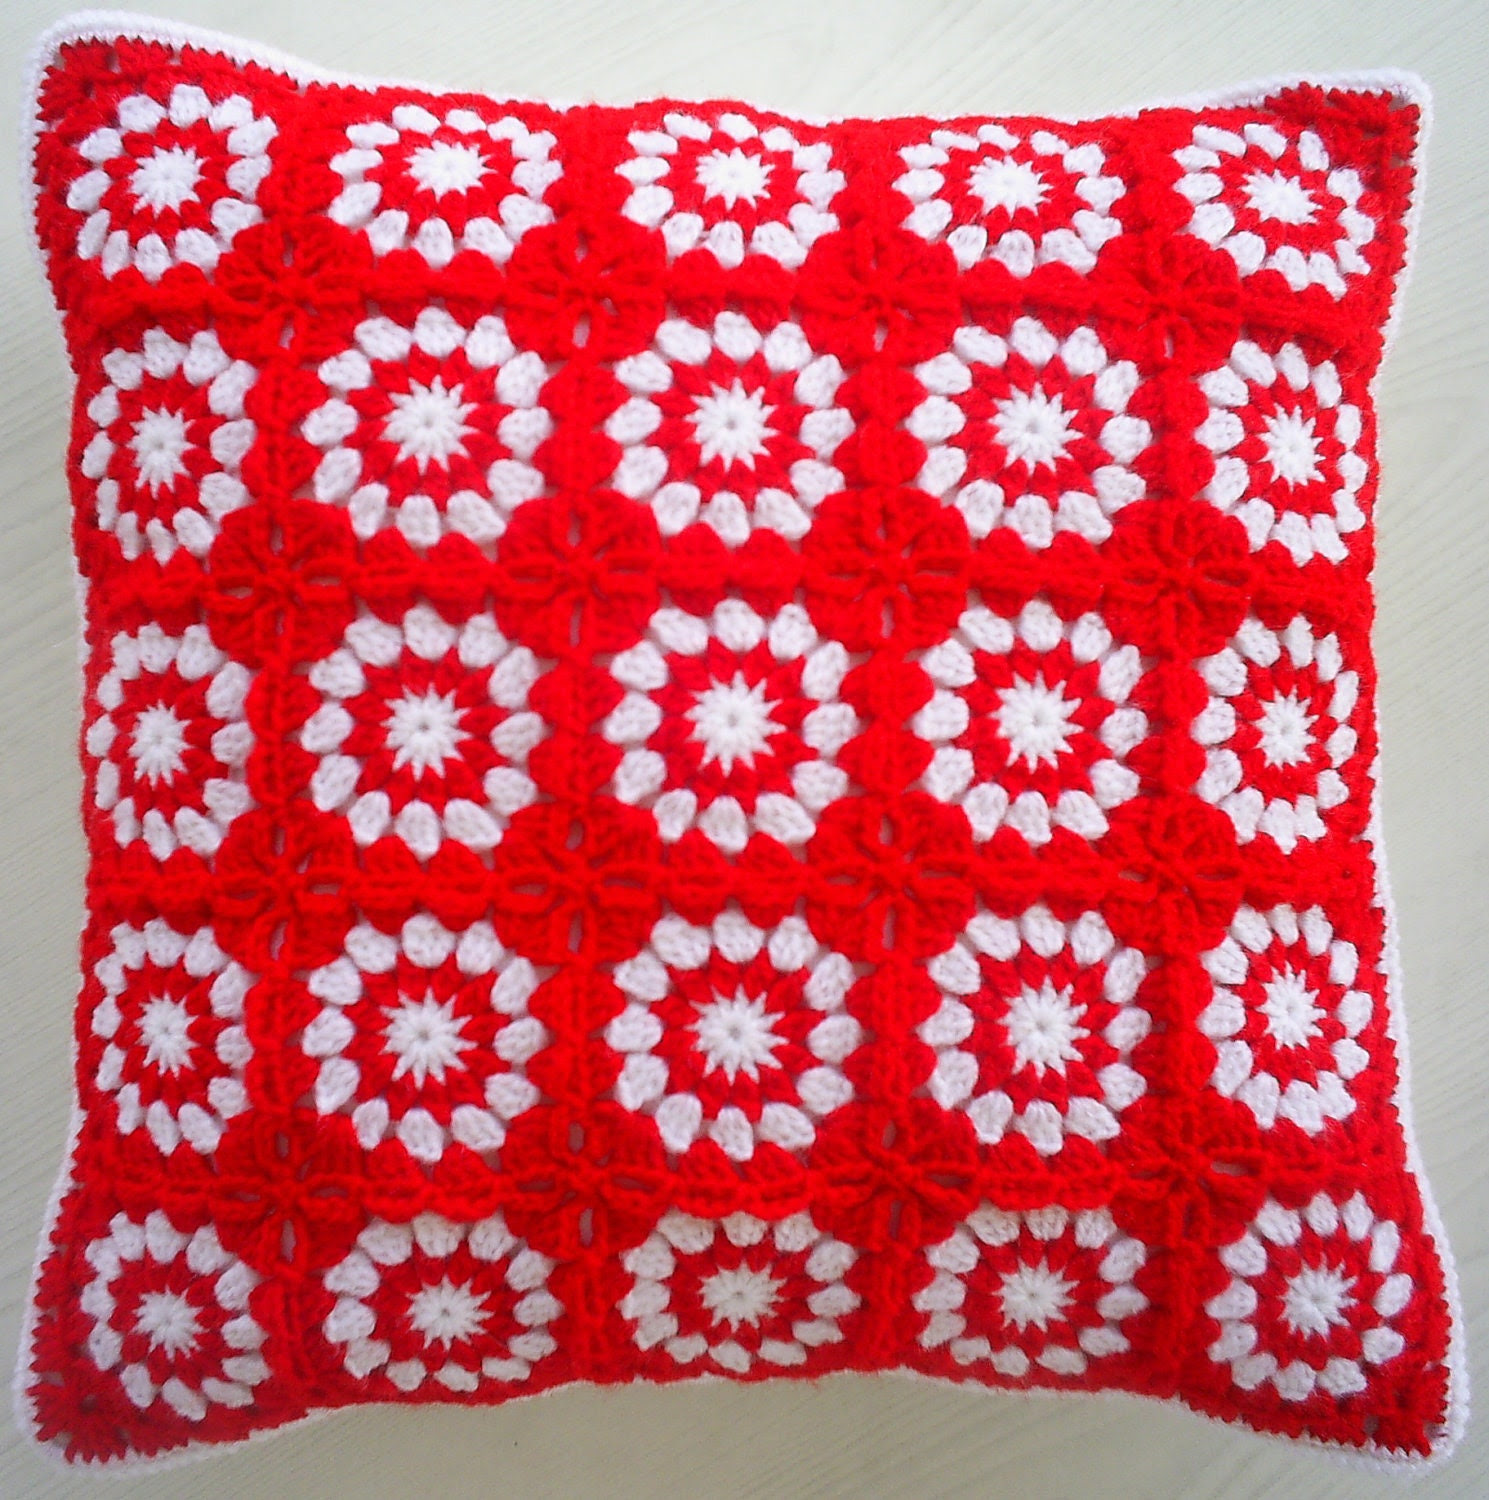 the red and white granny square cushion cover / pillow cover - handmadebyria